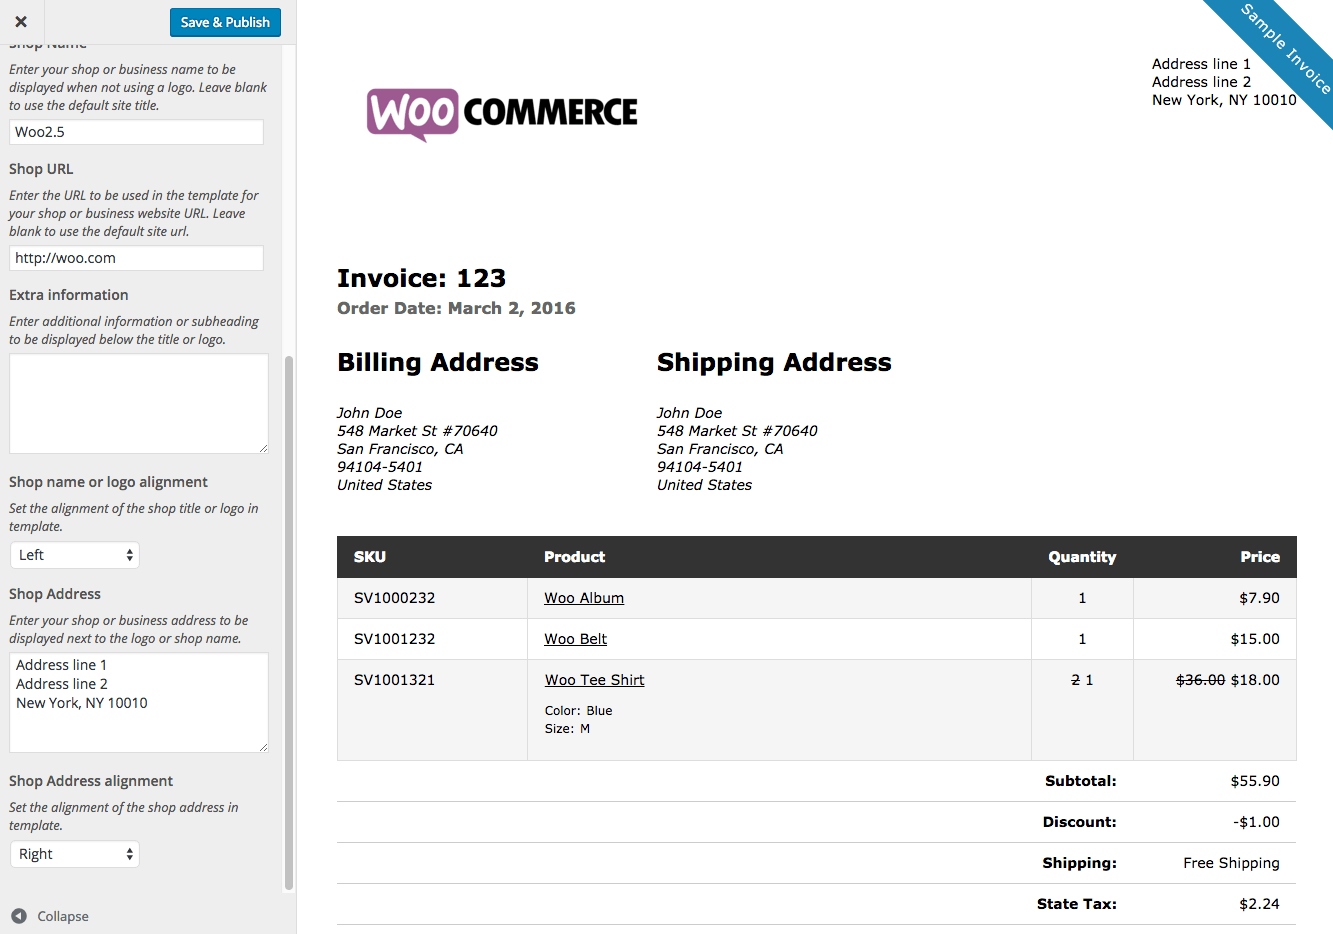 Carsforlessus  Gorgeous Woocommerce Print Invoices Amp Packing Lists  Woocommerce Docs With Remarkable Woocommerce Print Invoices  Packing Lists Customizer With Divine Make Fake Receipt Also Receipt Capture App In Addition Receipt Scanning Service And Warehouse Receipt Definition As Well As Receipt Of Funds Additionally Private Car Sale Receipt From Docswoocommercecom With Carsforlessus  Remarkable Woocommerce Print Invoices Amp Packing Lists  Woocommerce Docs With Divine Woocommerce Print Invoices  Packing Lists Customizer And Gorgeous Make Fake Receipt Also Receipt Capture App In Addition Receipt Scanning Service From Docswoocommercecom